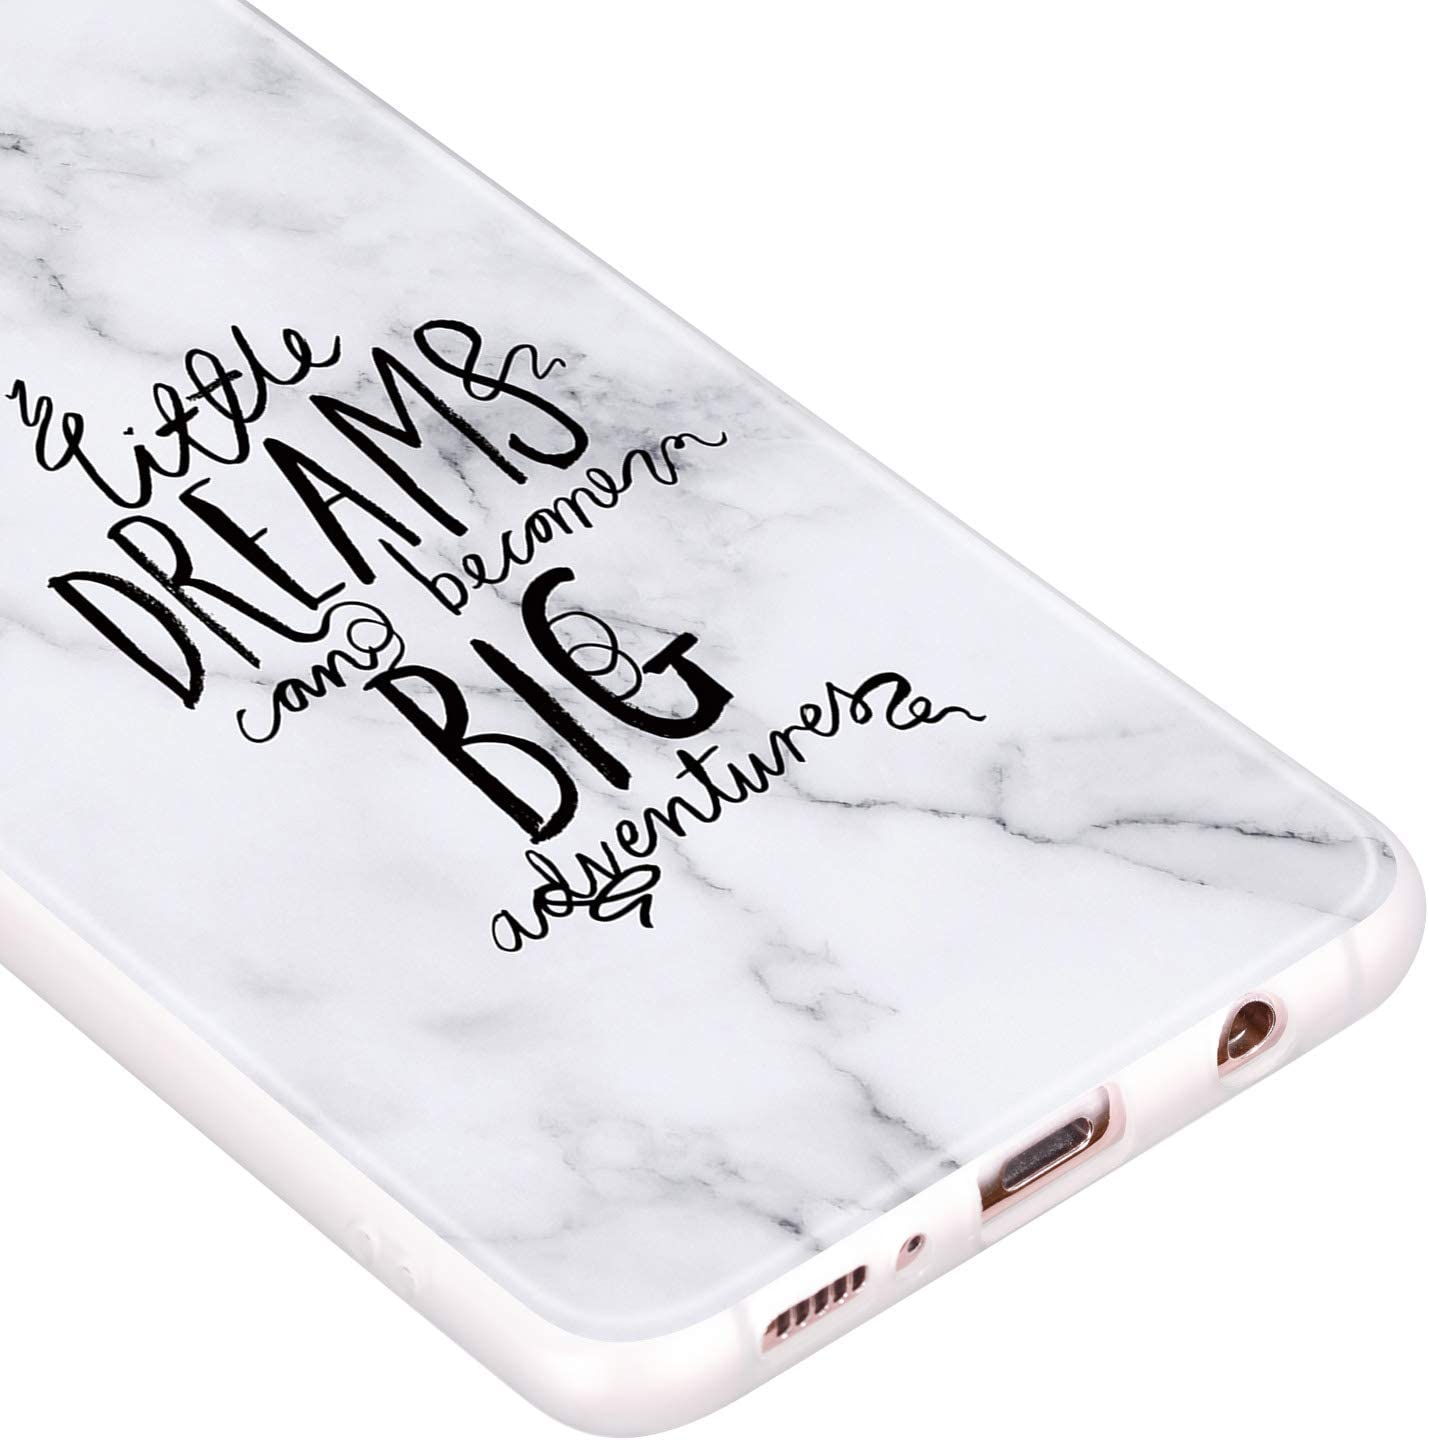 Mandala SEEYA Phone Cases for Samsung Galaxy A51 Marble White Silicone Case Soft TPU Rubber Bumper Cover Opaque Semi-Transparent Slim Fit Flexible Shockproof Sleeve Shell for Samsung Galaxy A51